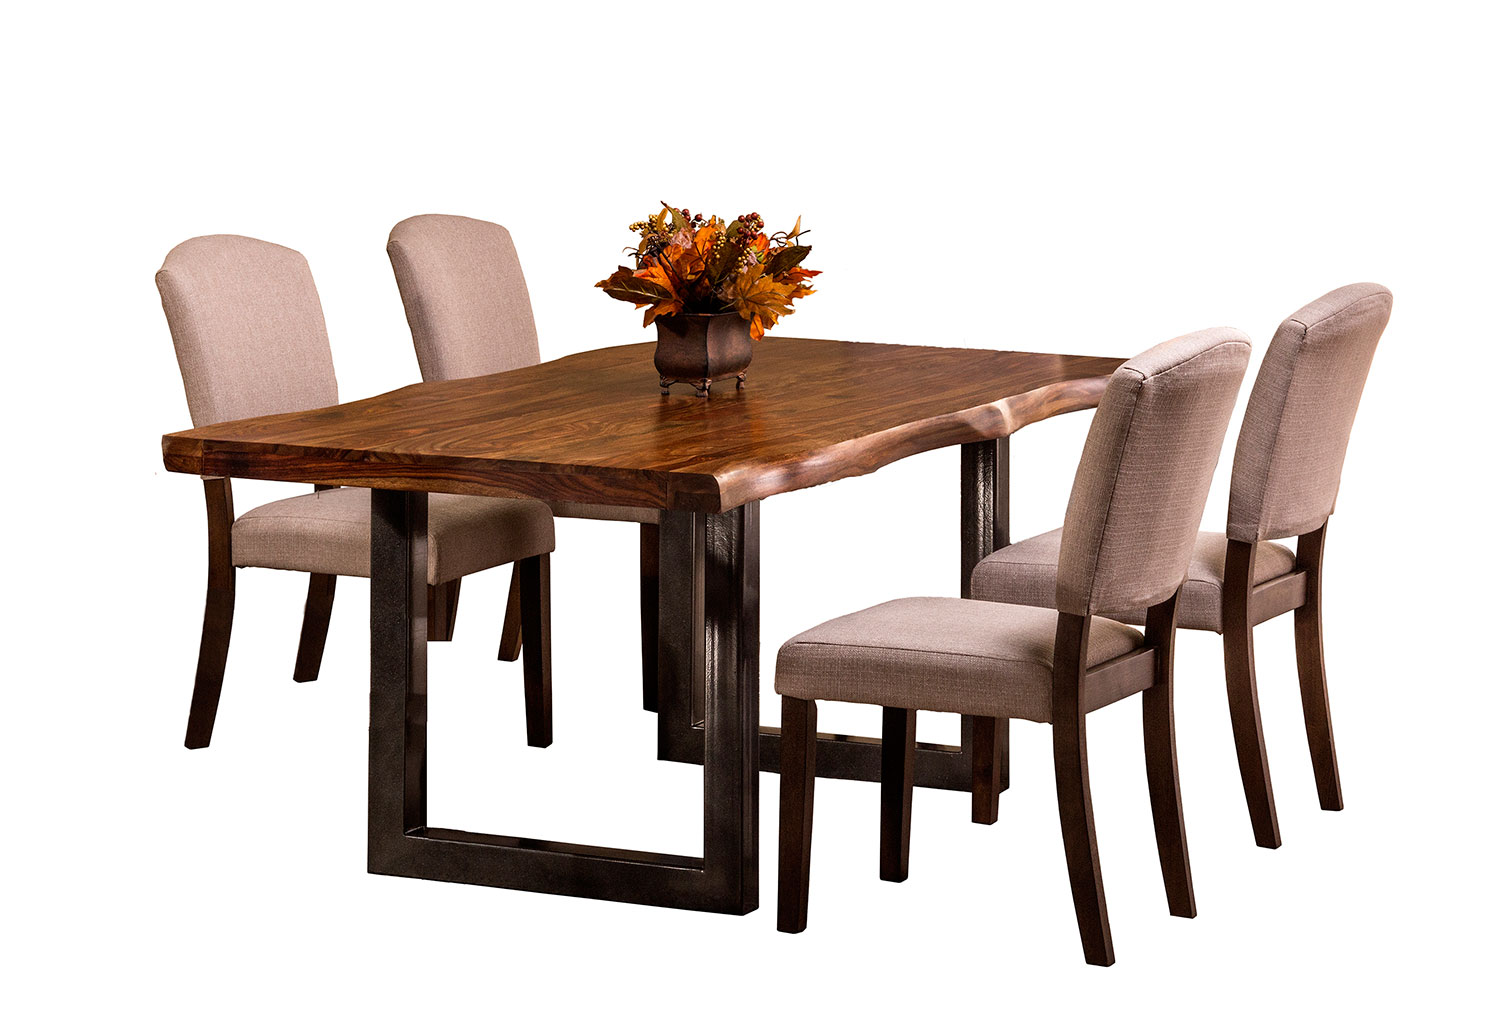 Hillsdale Emerson 5-Piece Rectangle Dining Set - Natural Sheesham/Gray Coat/Black